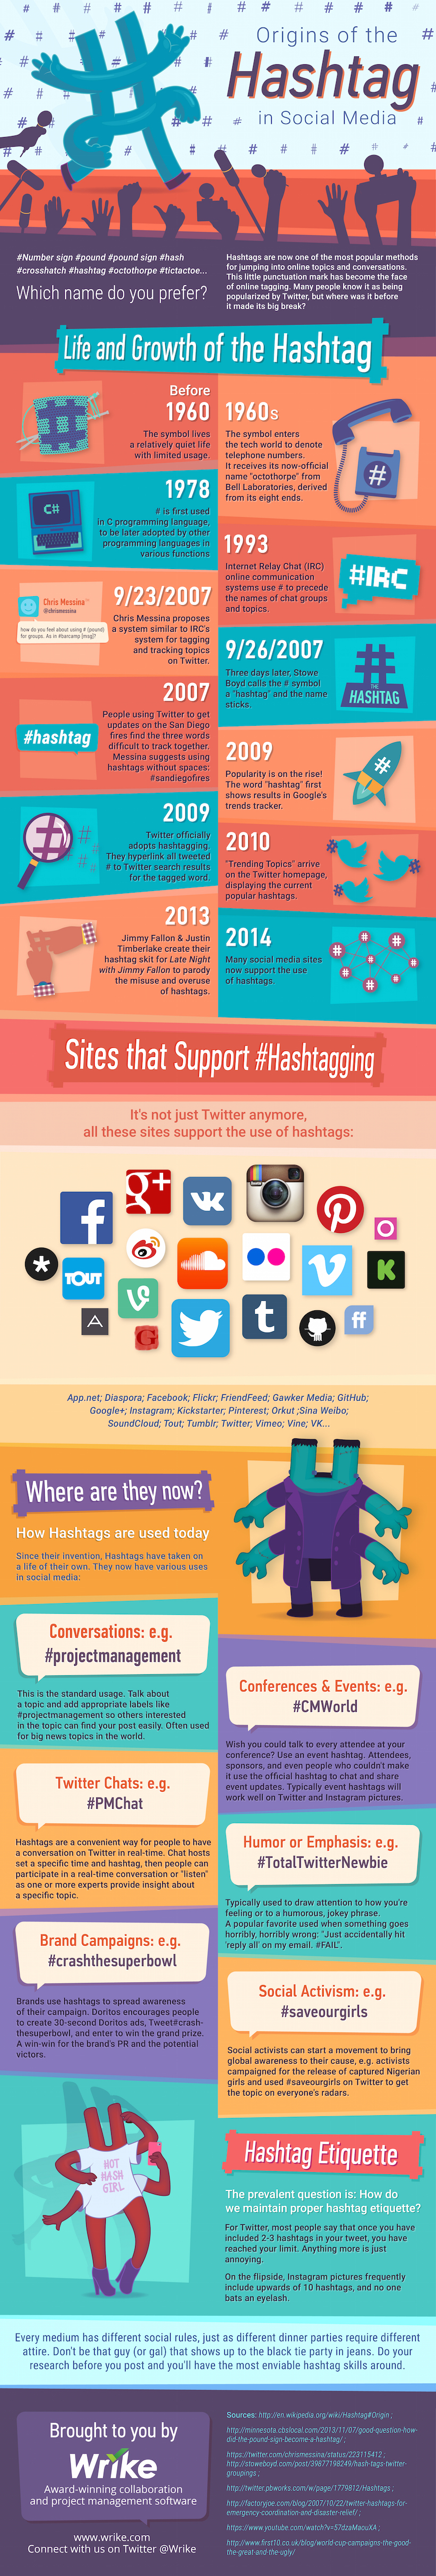 Origin of the #Hashtag in Social Media (#Infographic)